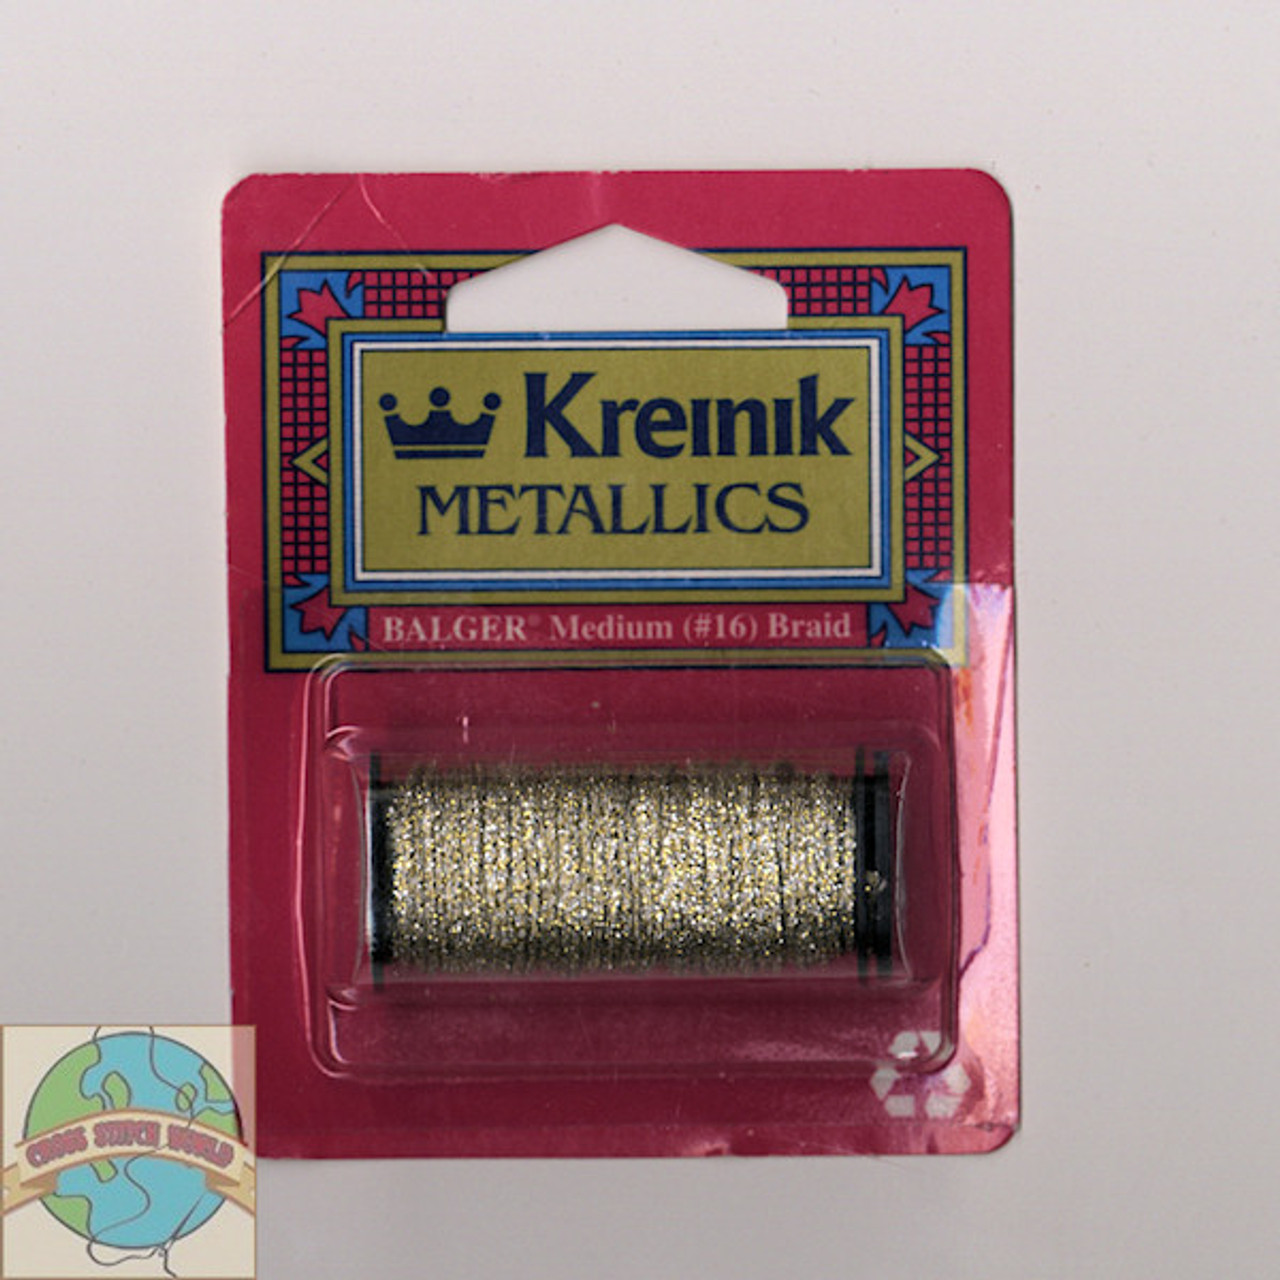 Kreinik Metallics - Medium #16 Vatican Gold 102